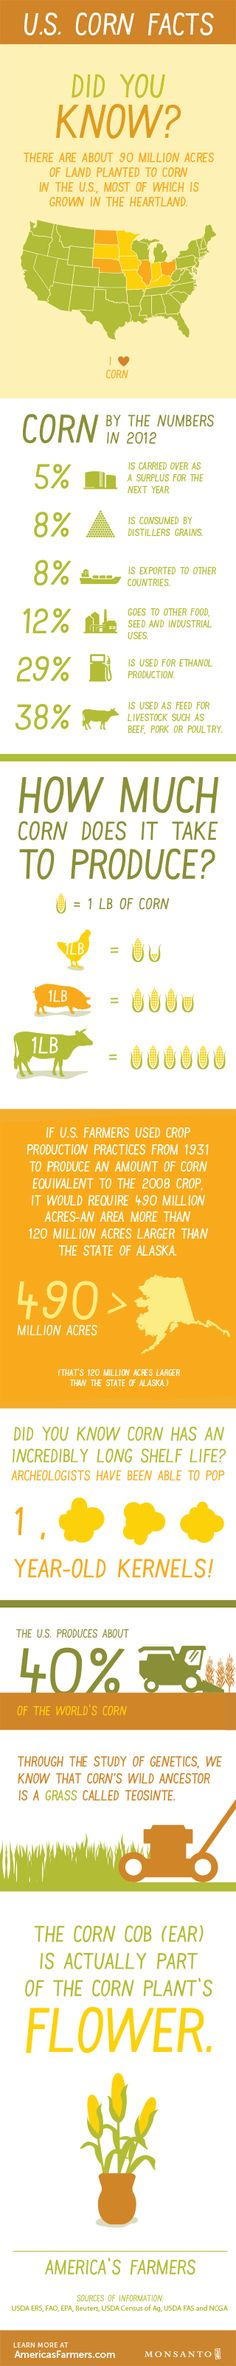 Check out this cool infographic on US Corn Facts!! #AmericasFarmers